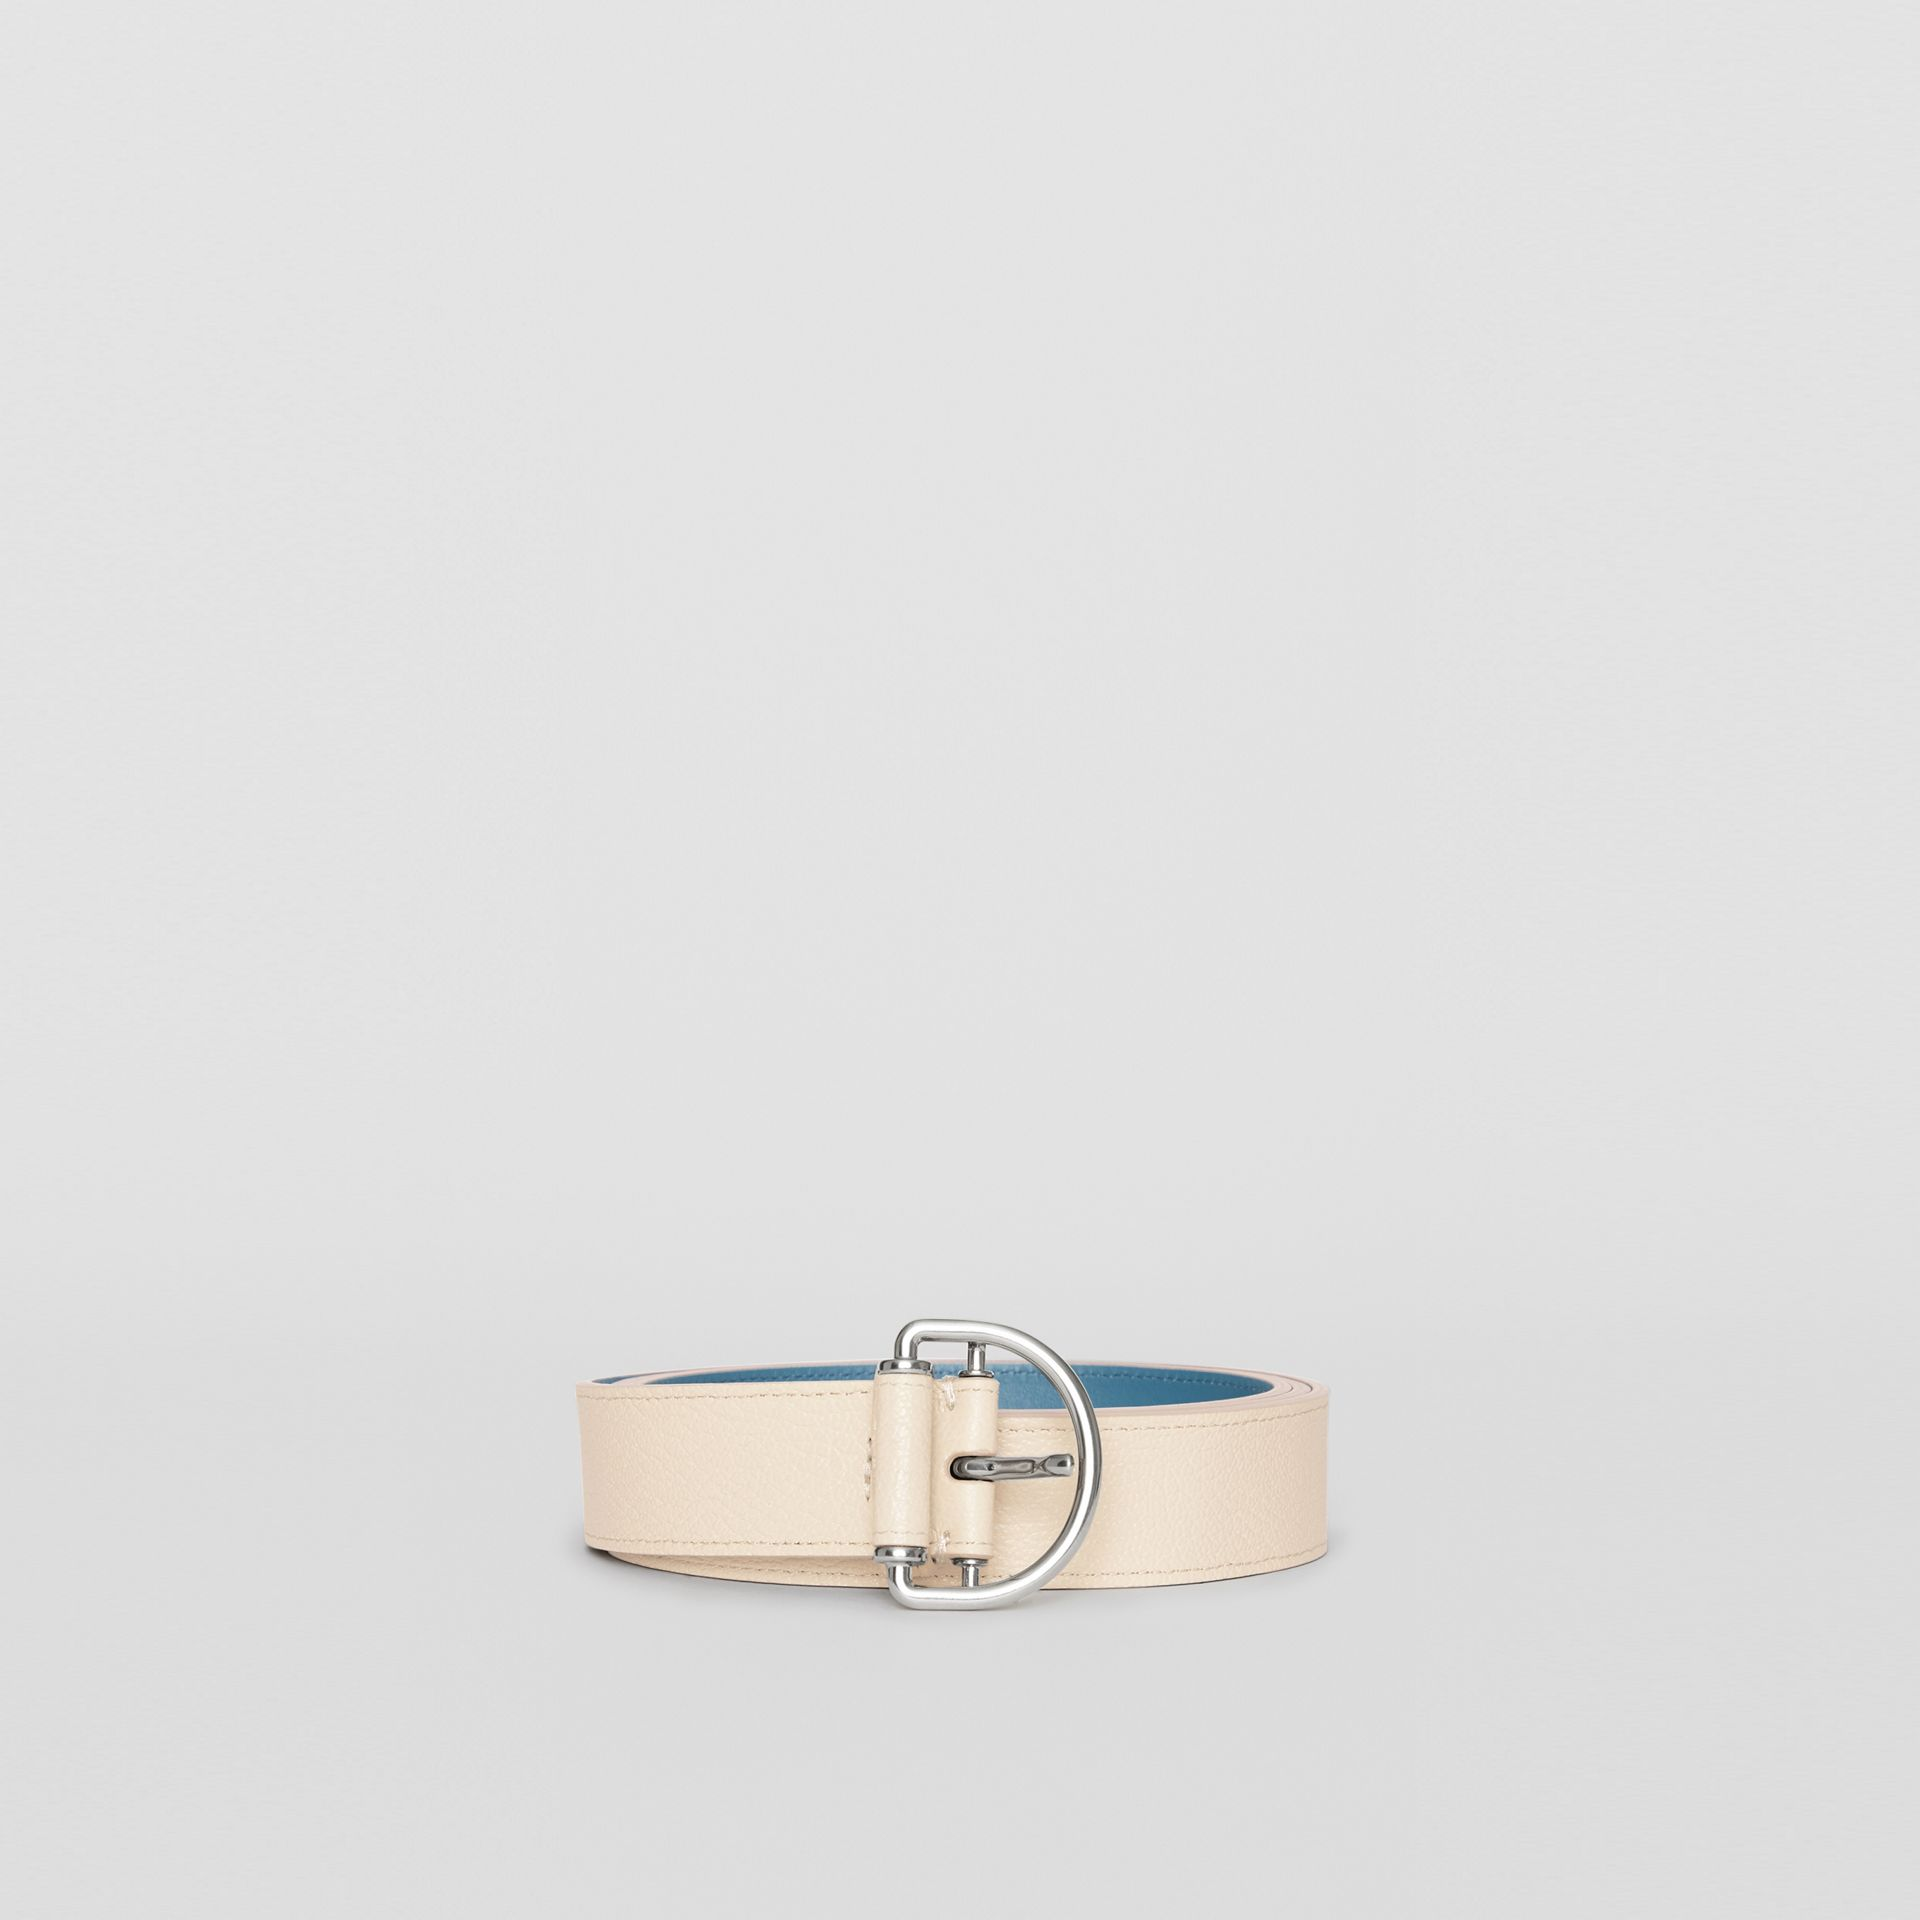 Grainy Leather D-ring Belt in Stone/pewter Blue - Women | Burberry - gallery image 3